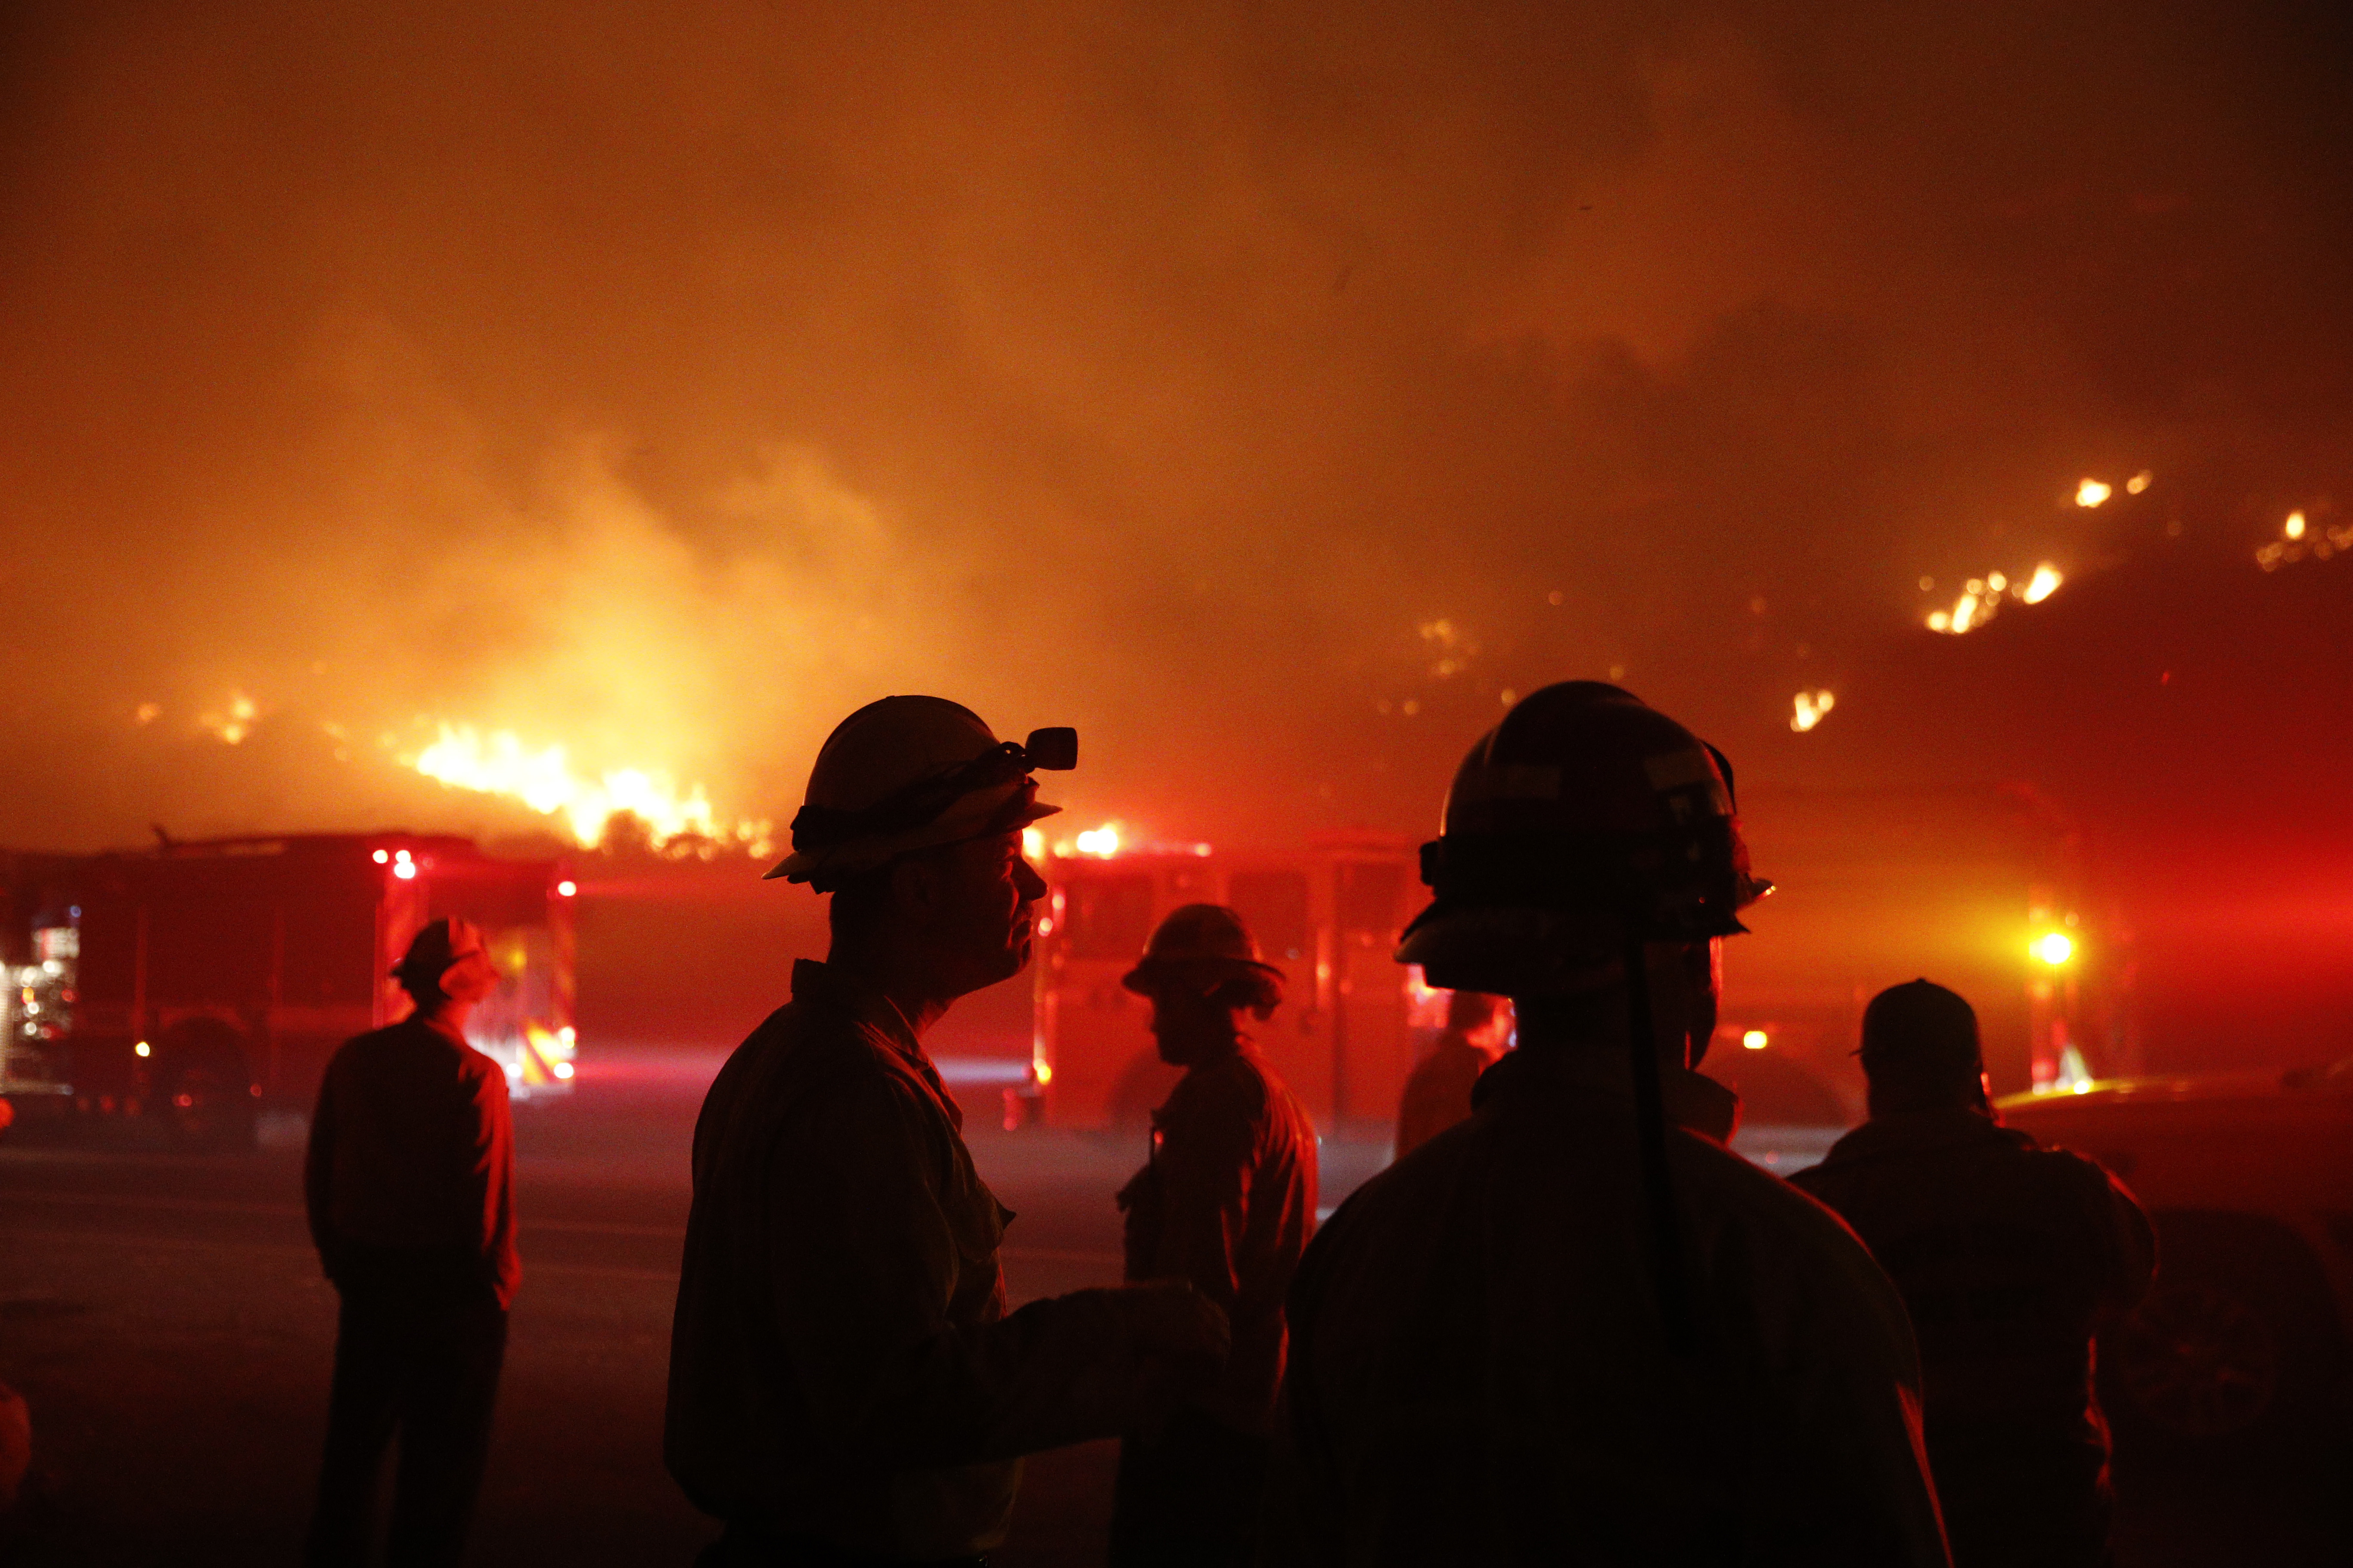 <div class='meta'><div class='origin-logo' data-origin='none'></div><span class='caption-text' data-credit='Jae C. Hong/AP Photo'>Firefighters gather in front of a residential area as a wildfire burns along the 101 Freeway Tuesday, Dec. 5, 2017, in Ventura, Calif.</span></div>